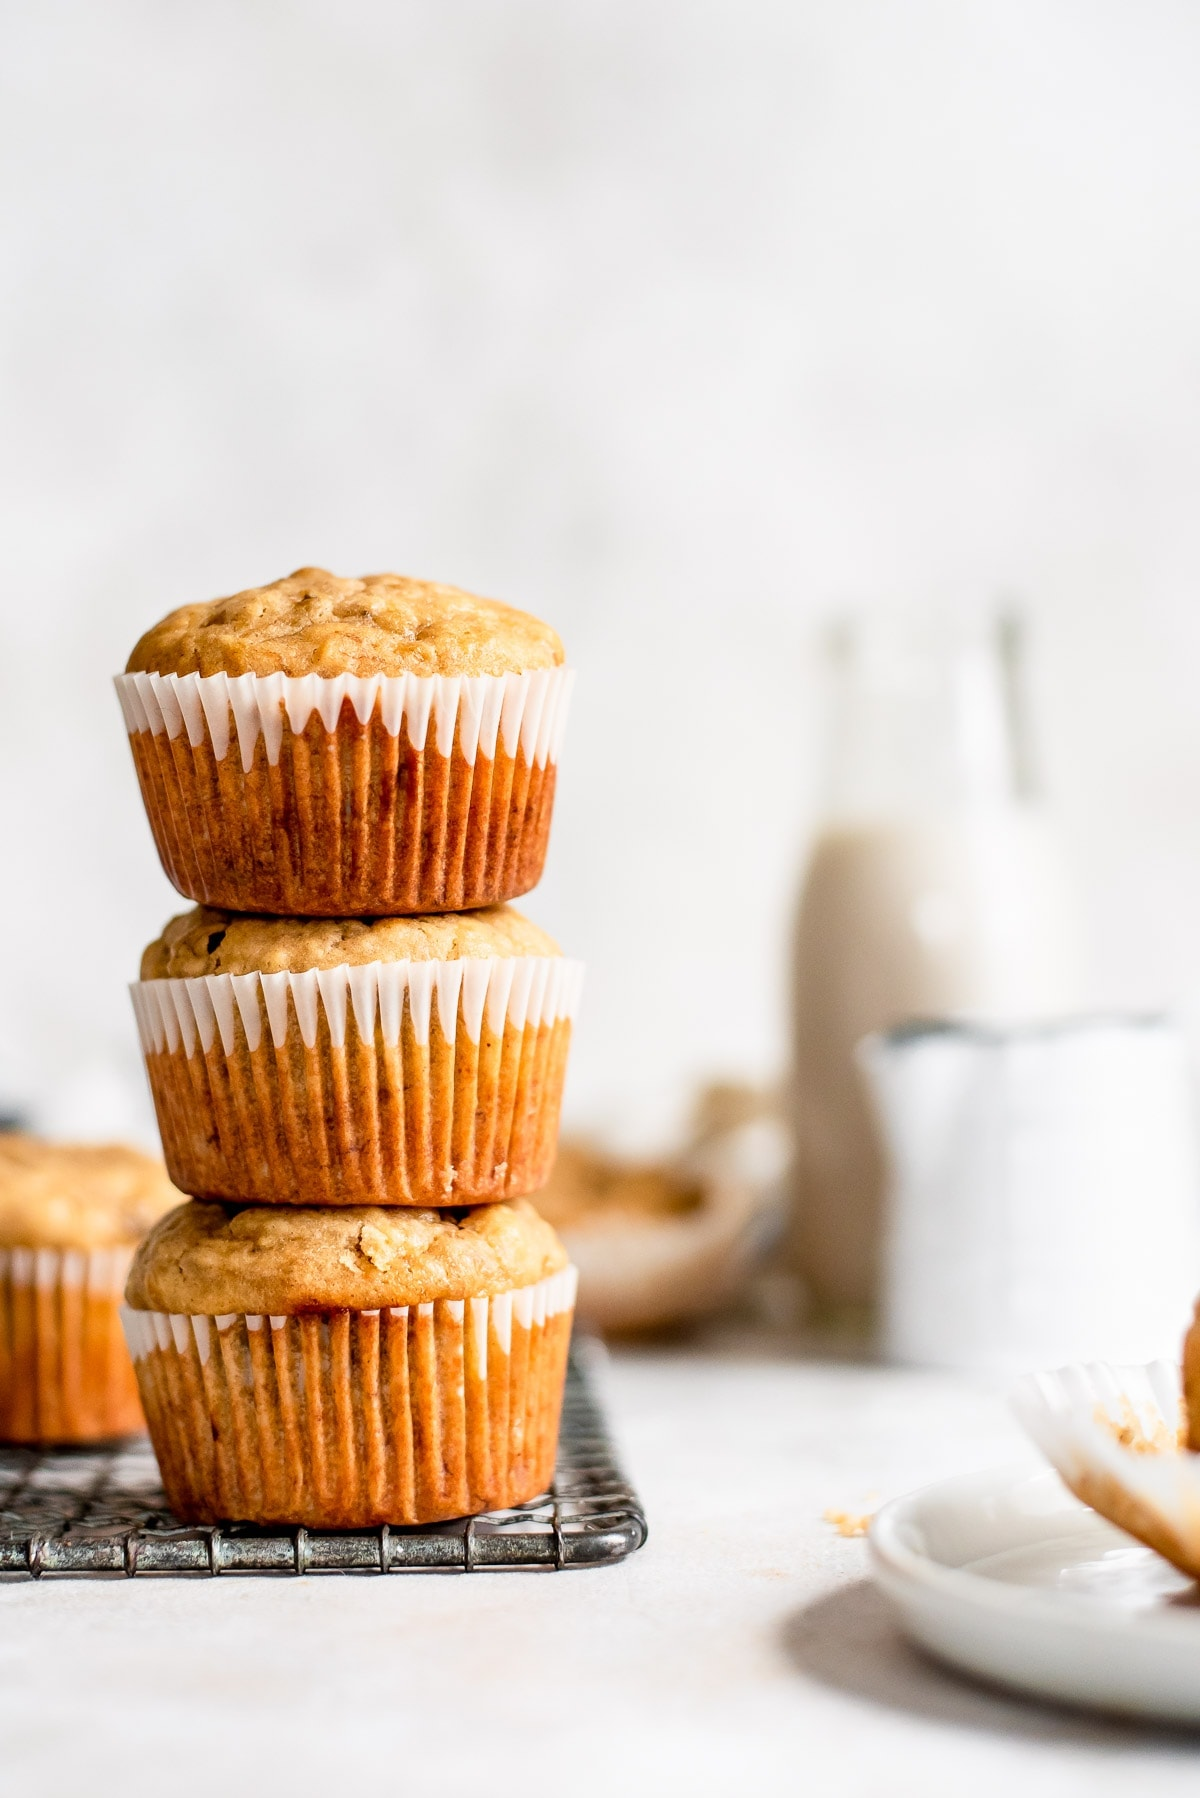 muffins stacked on one another on wire rack